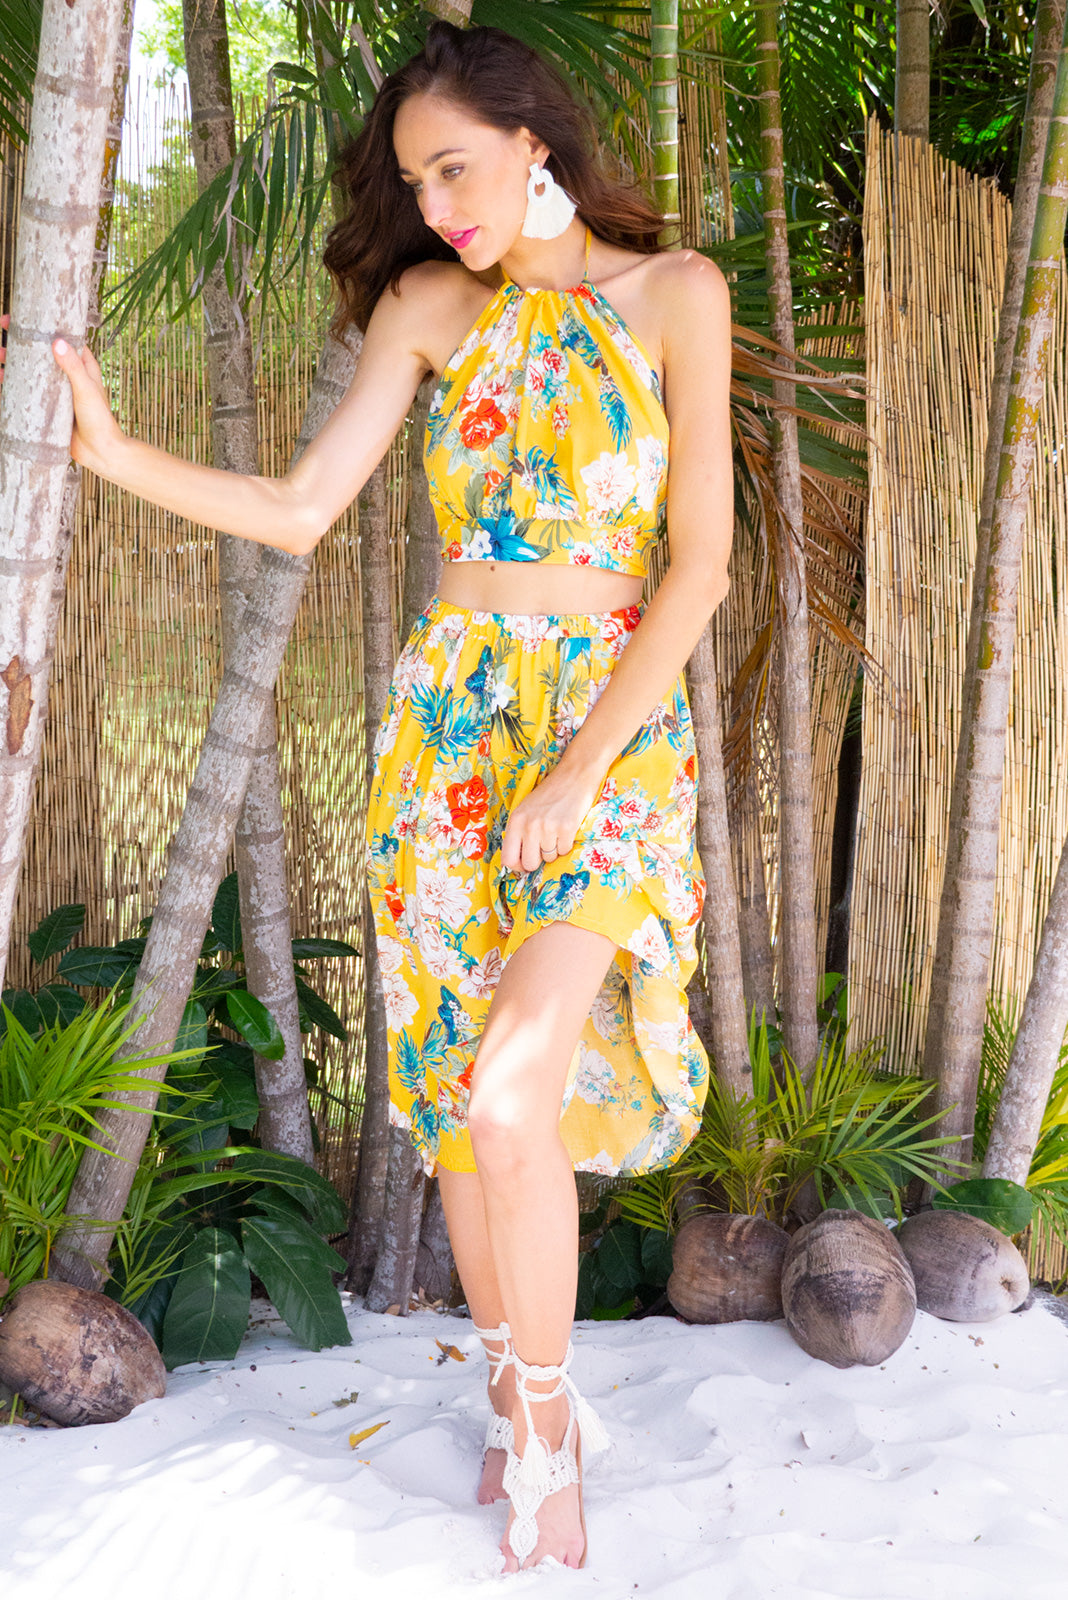 Bahama Top Sunshine Yellow is a halter neck adjustable tie top that is backless in a bright yellow tropical print on 100% rayon